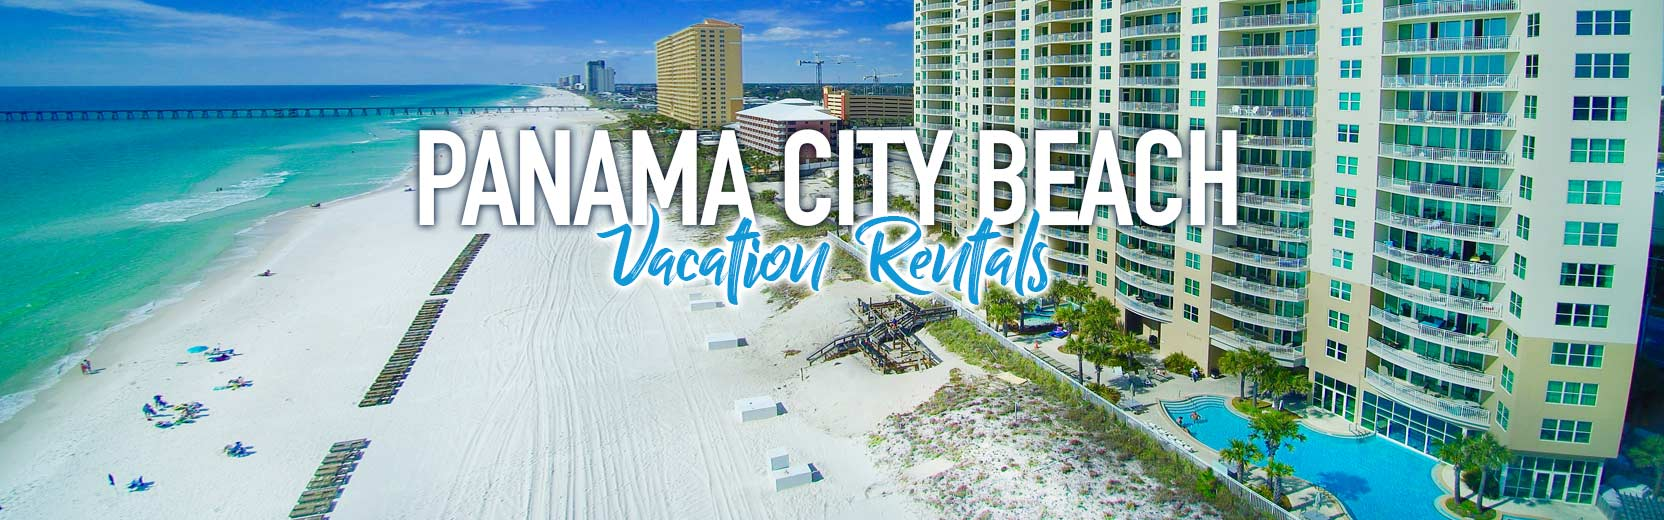 Panama City Beach Condos Panama City Beach Vacation Rentals